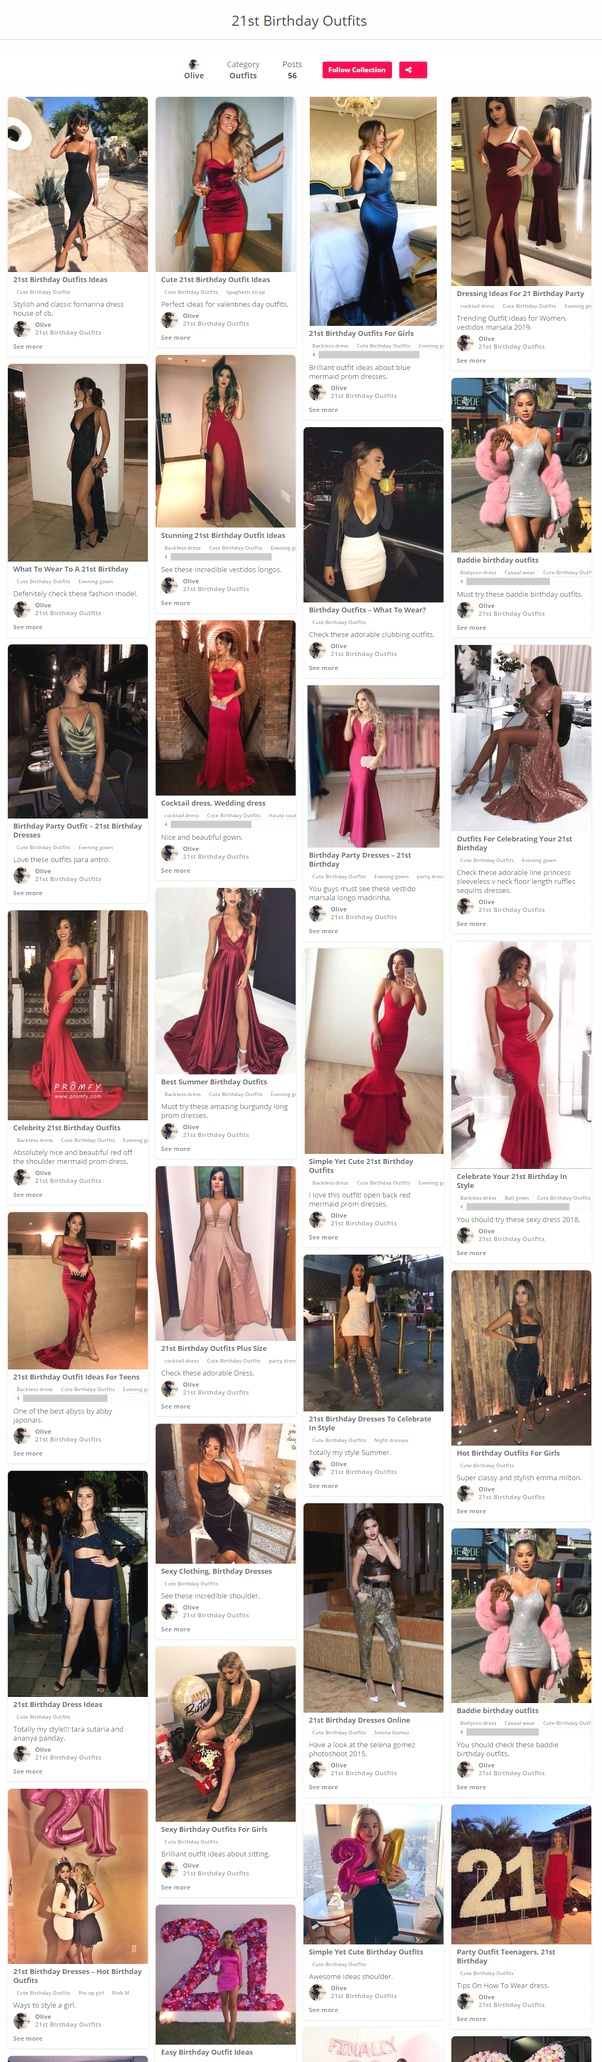 What Outfit Should I Wear On My 21st Birthday Quora